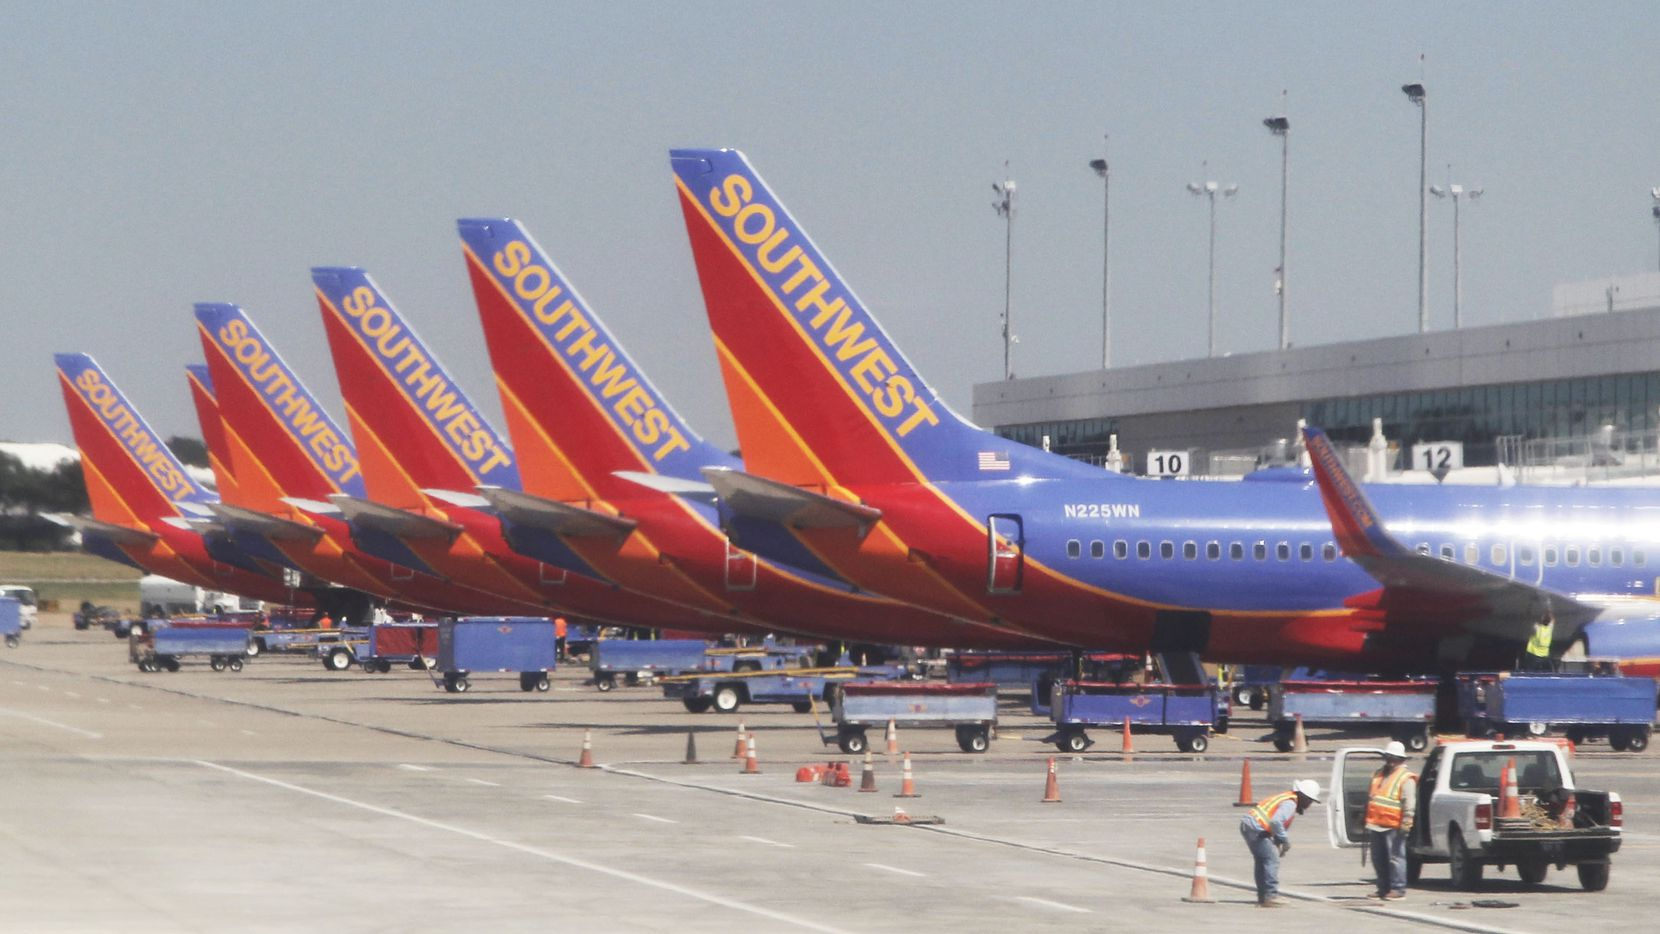 Southwest Airlines jets line up at Dallas Love Field, one of the airports that CEO Gary Kelly singled out as helping his company break the $1 billion mark in profit.